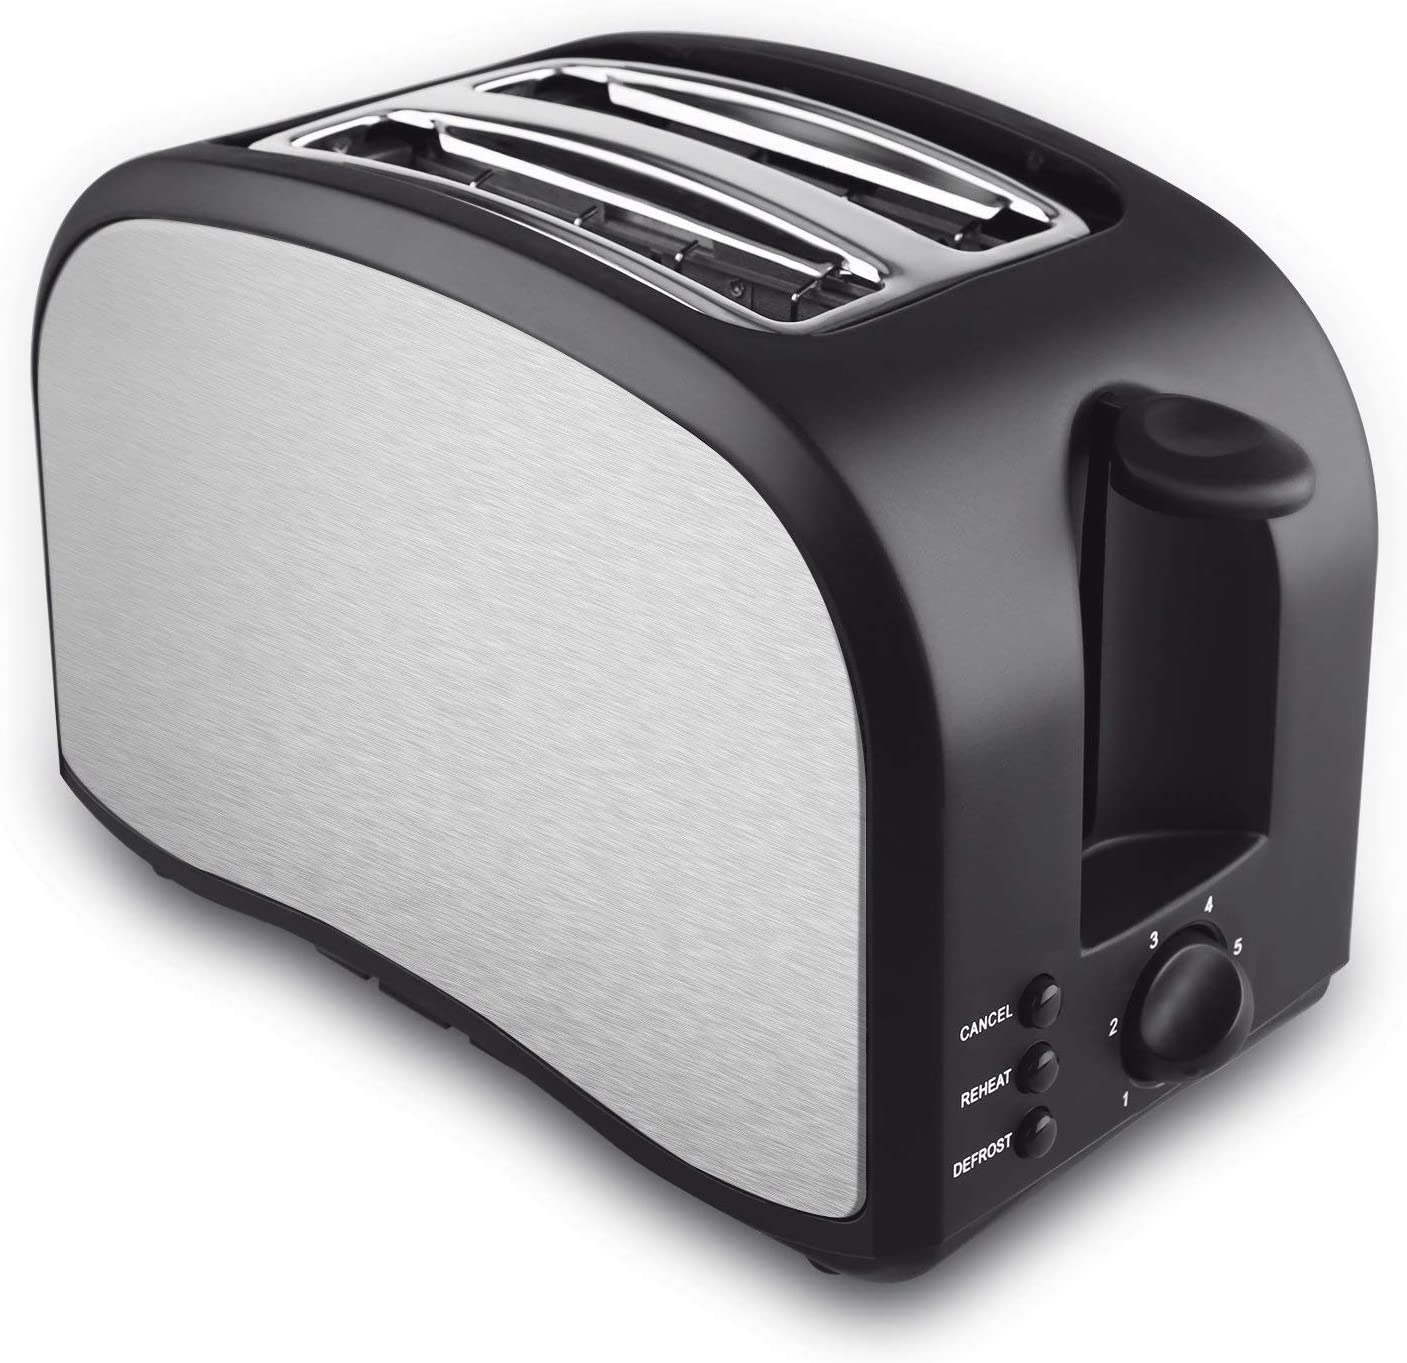 2 Slice Toaster, Cool Touch Toaster 2-Slice Self-Adjusting Toasting Slots, Compact Toasters with Defrost Reheat Cancel Function Extra Removable Crumb Tray, One Touch Quickly Toasts- Brush Stainless Steel